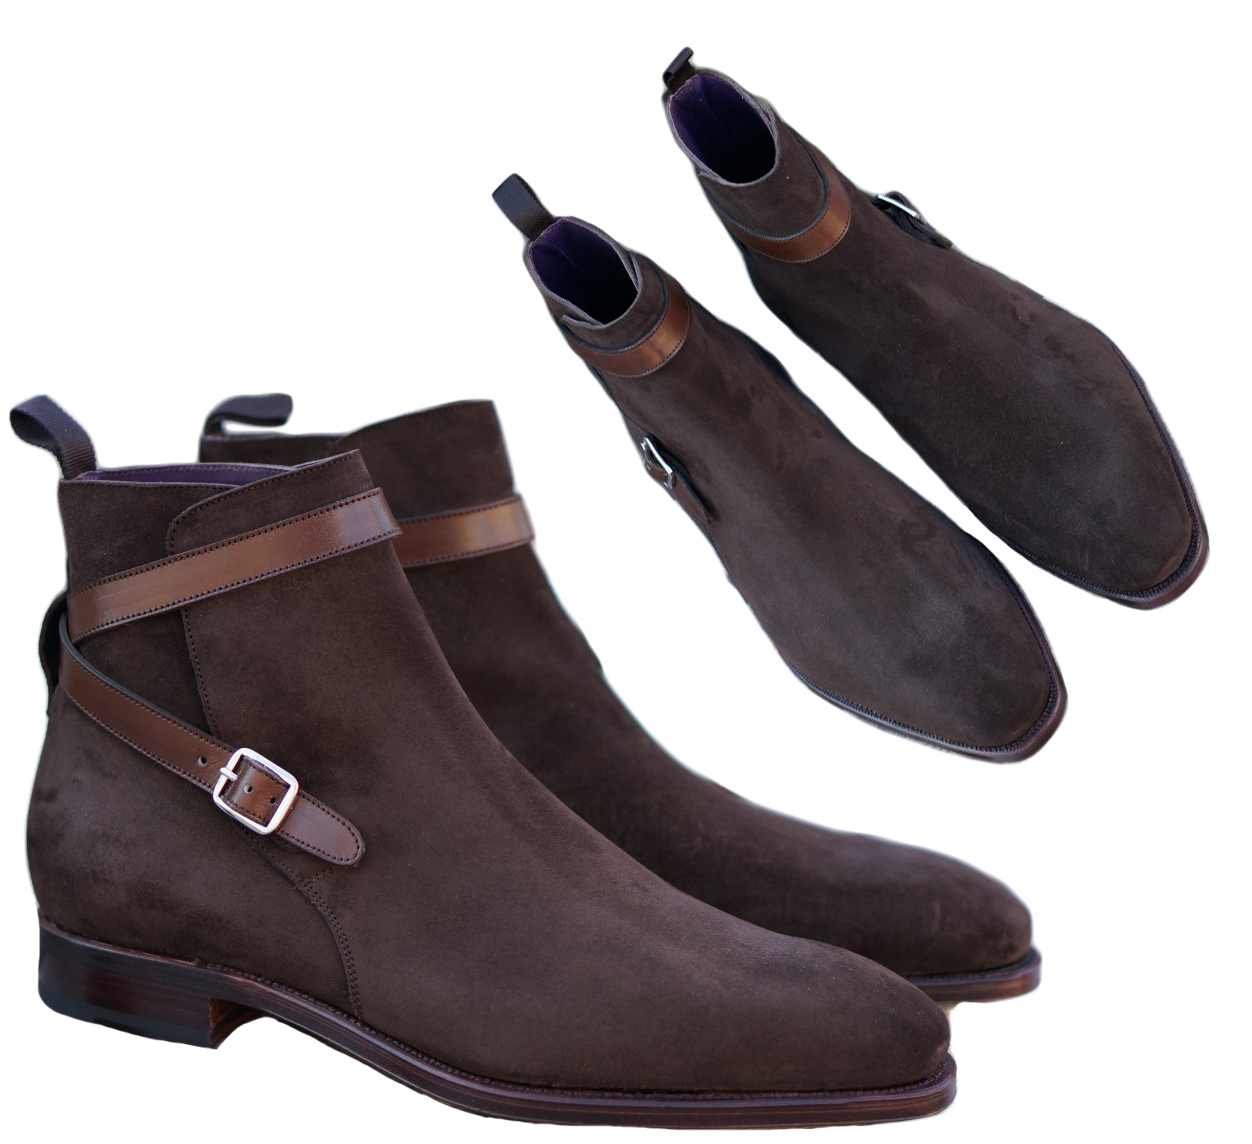 New Jodhpurs Brown Ankle Suede Boots, Ankle Boots Formal Boot